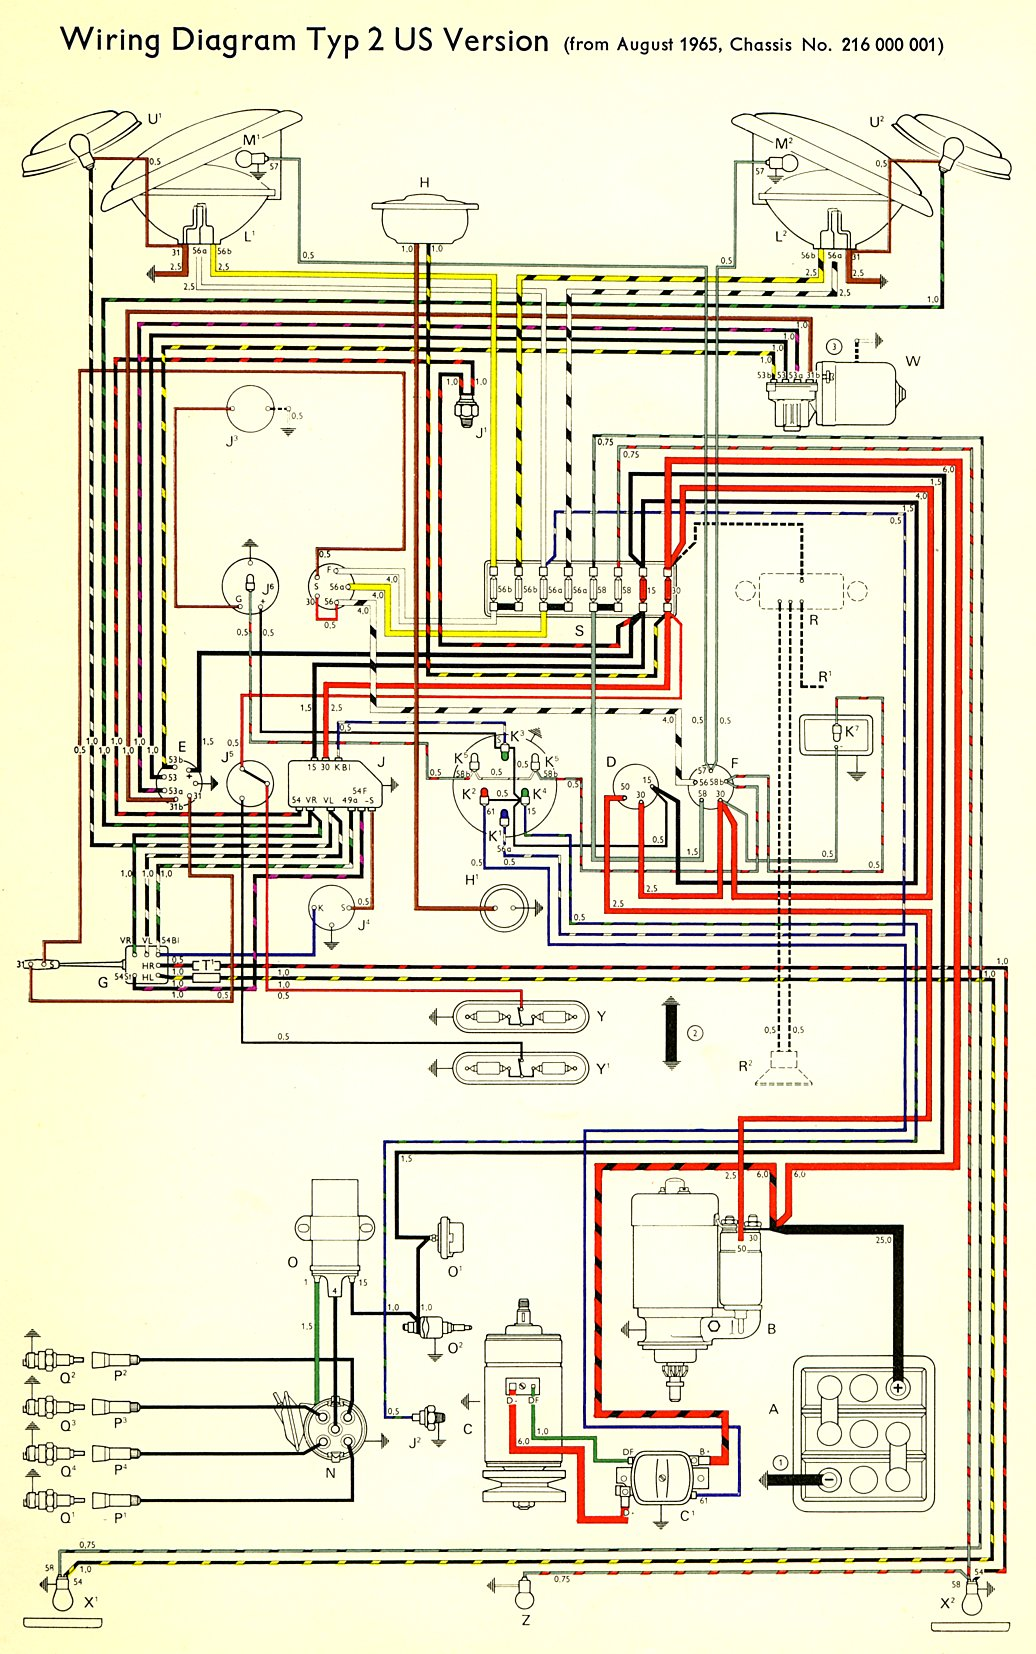 Bus Usa on 1959 Vw Wiring Diagram